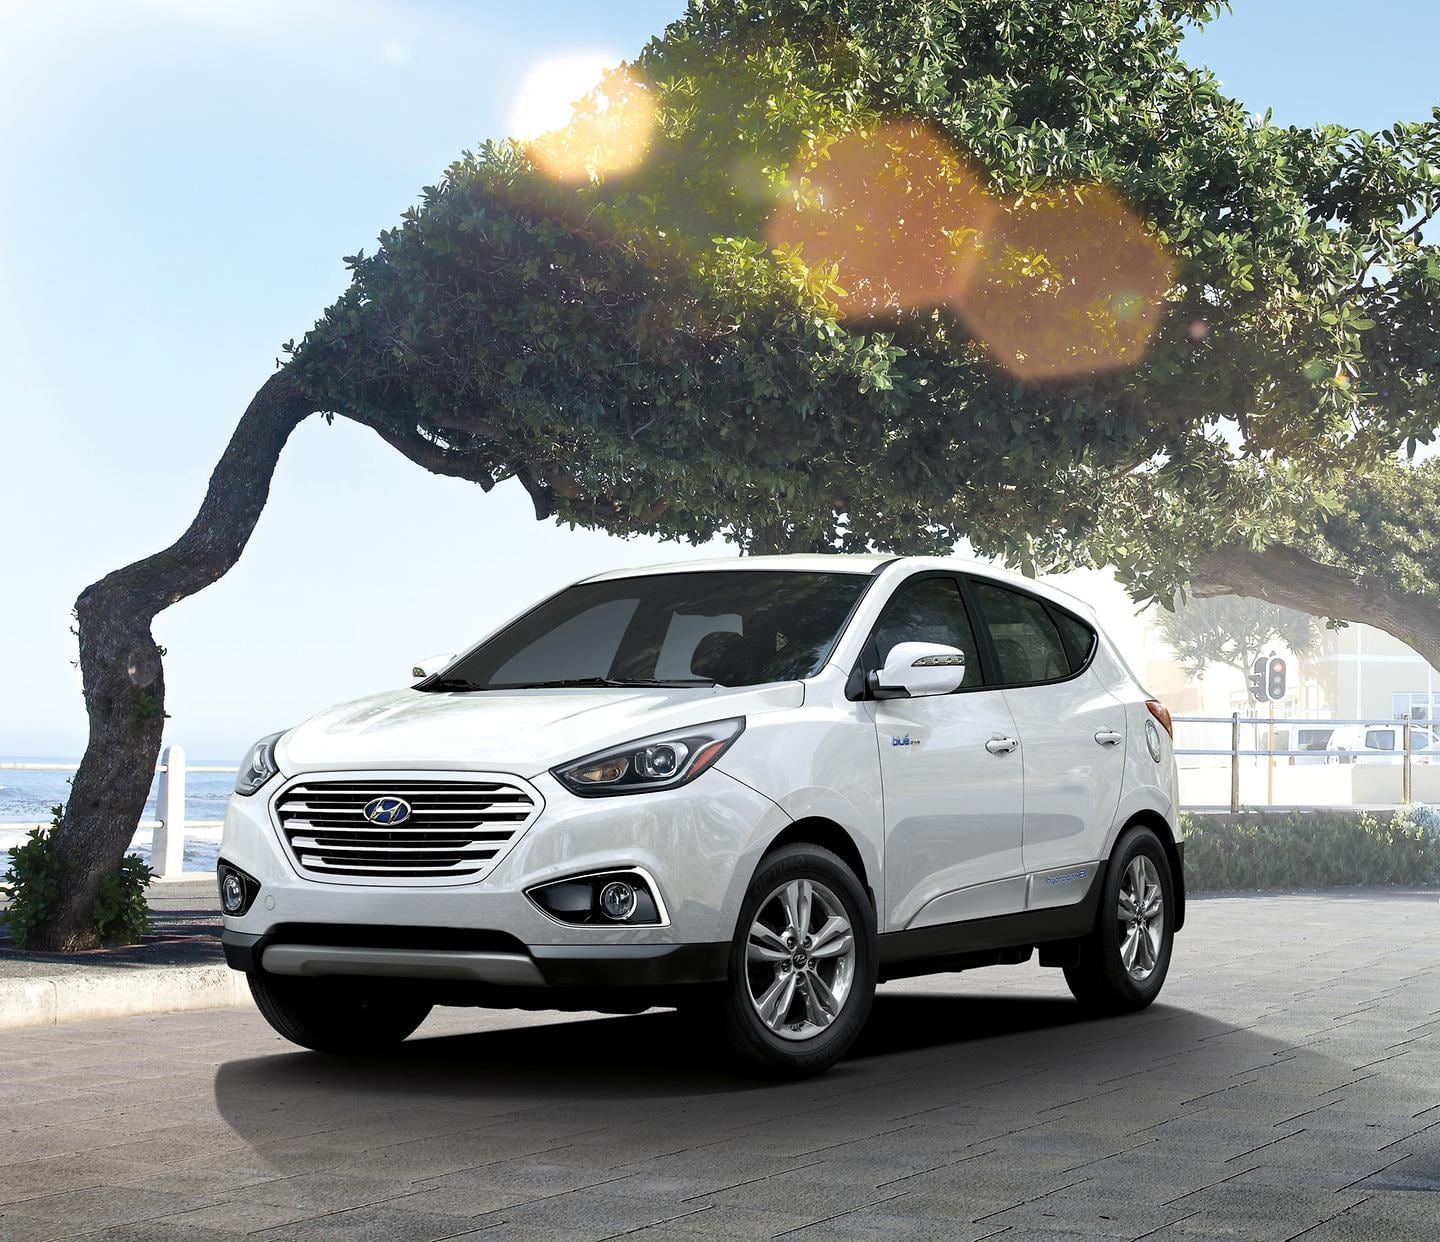 HYUNDAI HANDS KEYS TO FIRST FUEL CELL CUSTOMER IN AMERICA